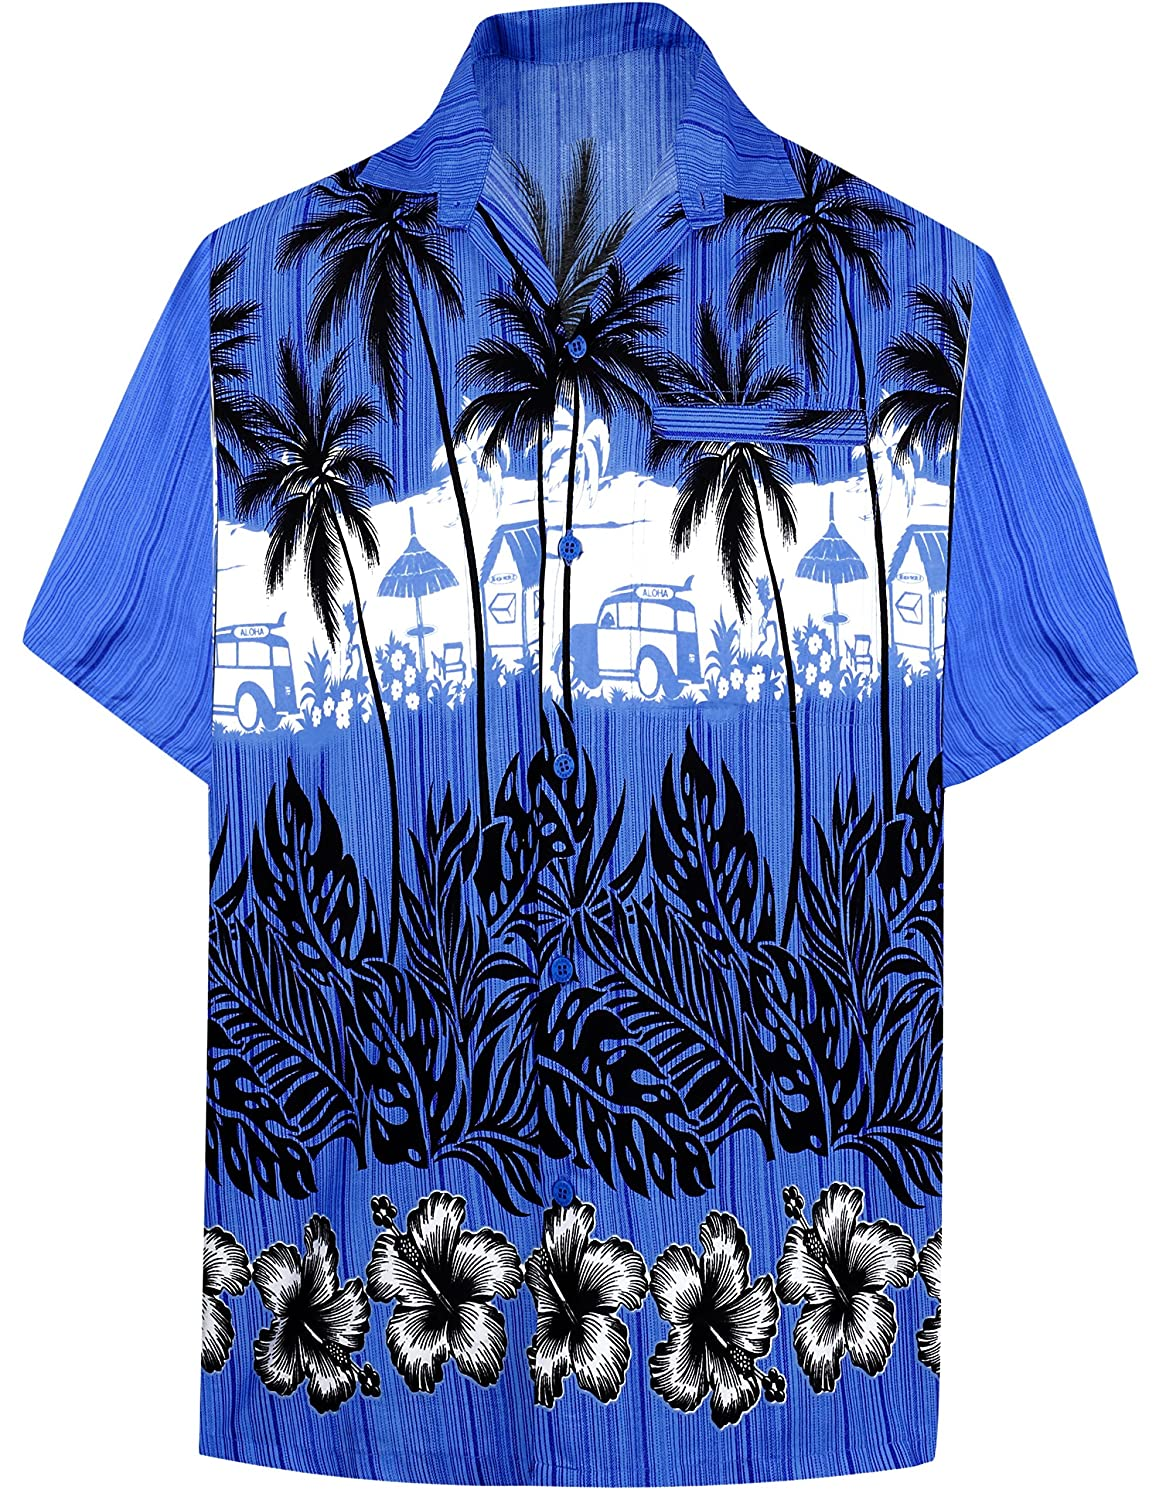 316c8a18 Cheap Wholesale Hawaiian Shirts - DREAMWORKS